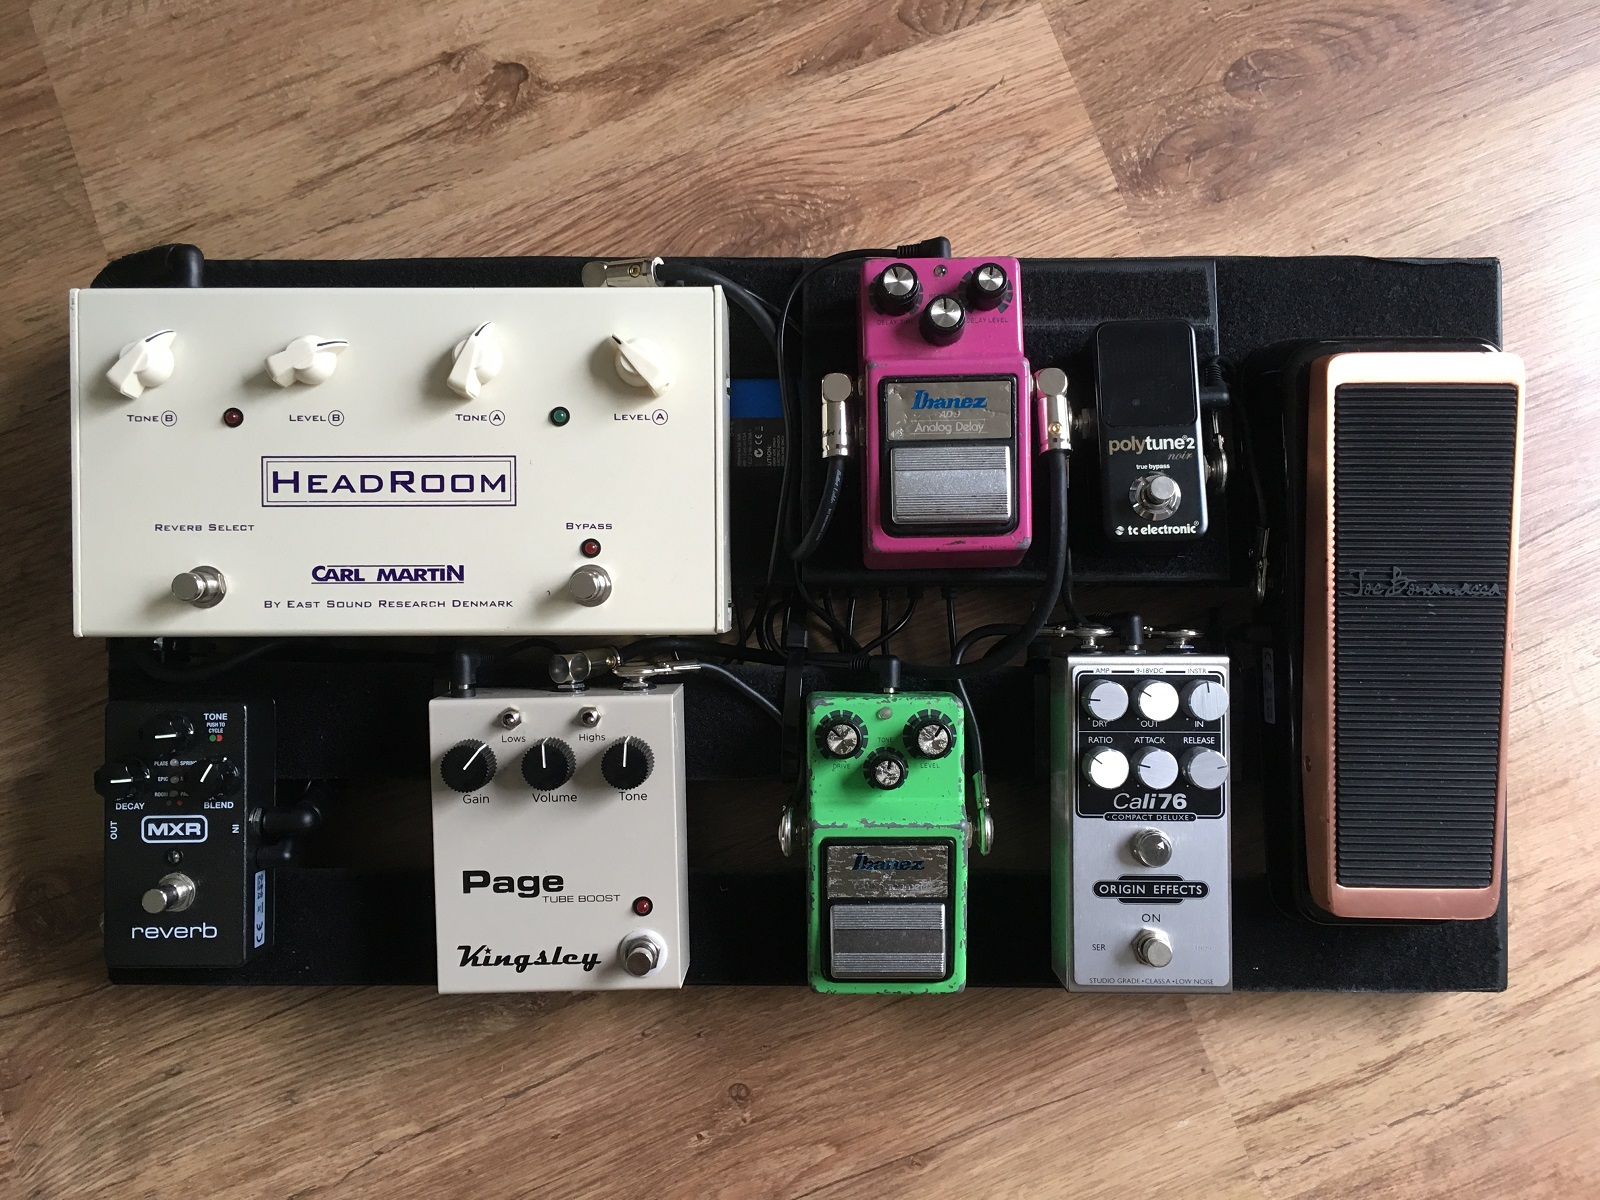 https://origineffects.com/wp-content/uploads/2017/08/Edward-Oleszko-Pedalboard-Origin-Effects-Cali76-Ibanez-AD9-TS9-Joe-Bonamassa-Wah-MXR-Reverb-Carl-Martin-Headroom.jpg